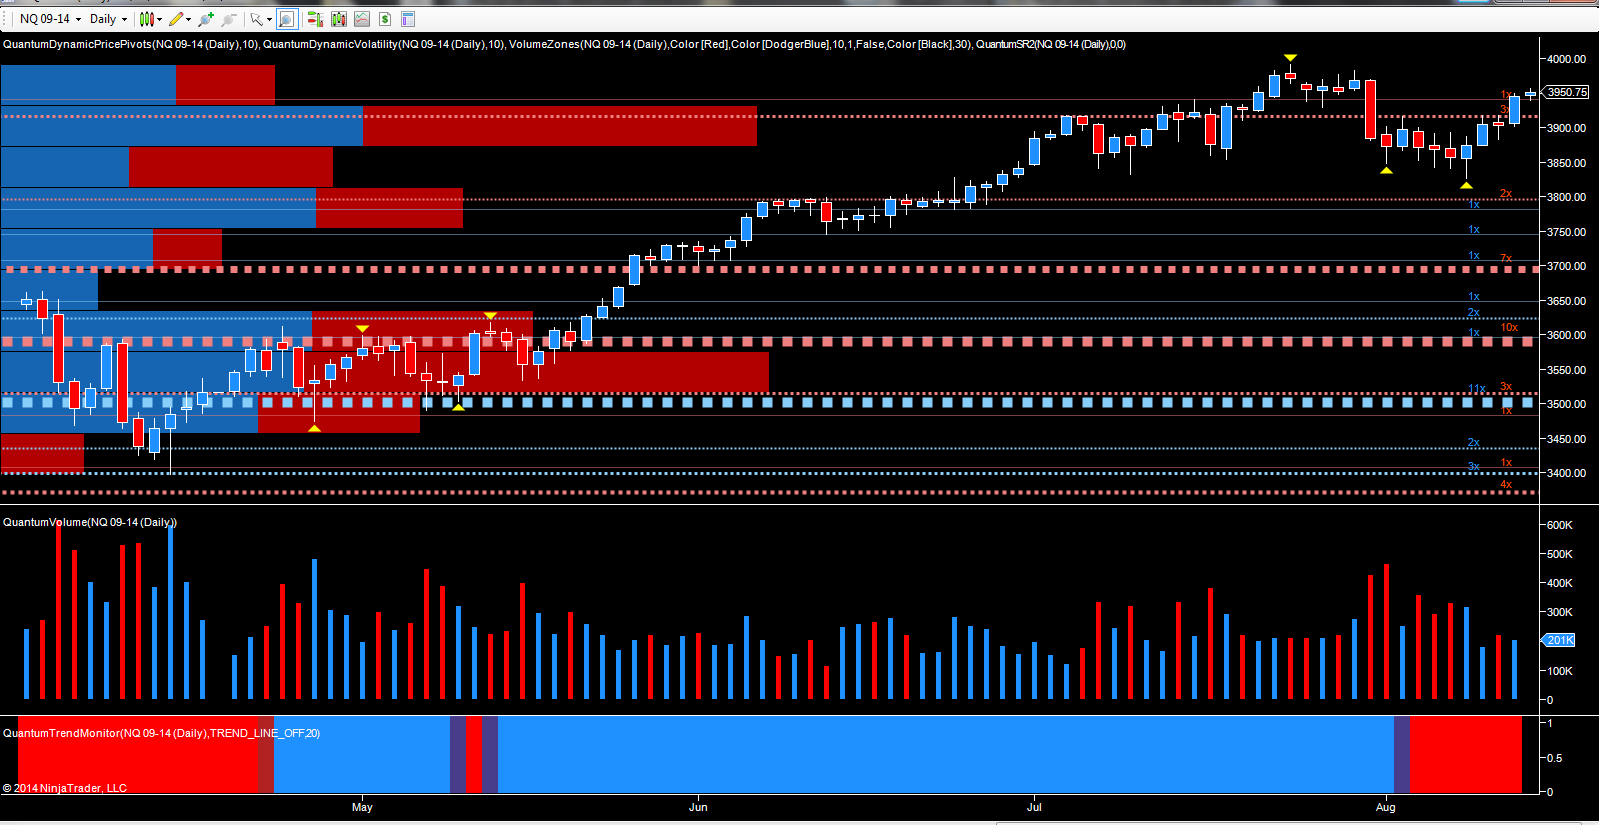 NQ - Emini September futures daily chart